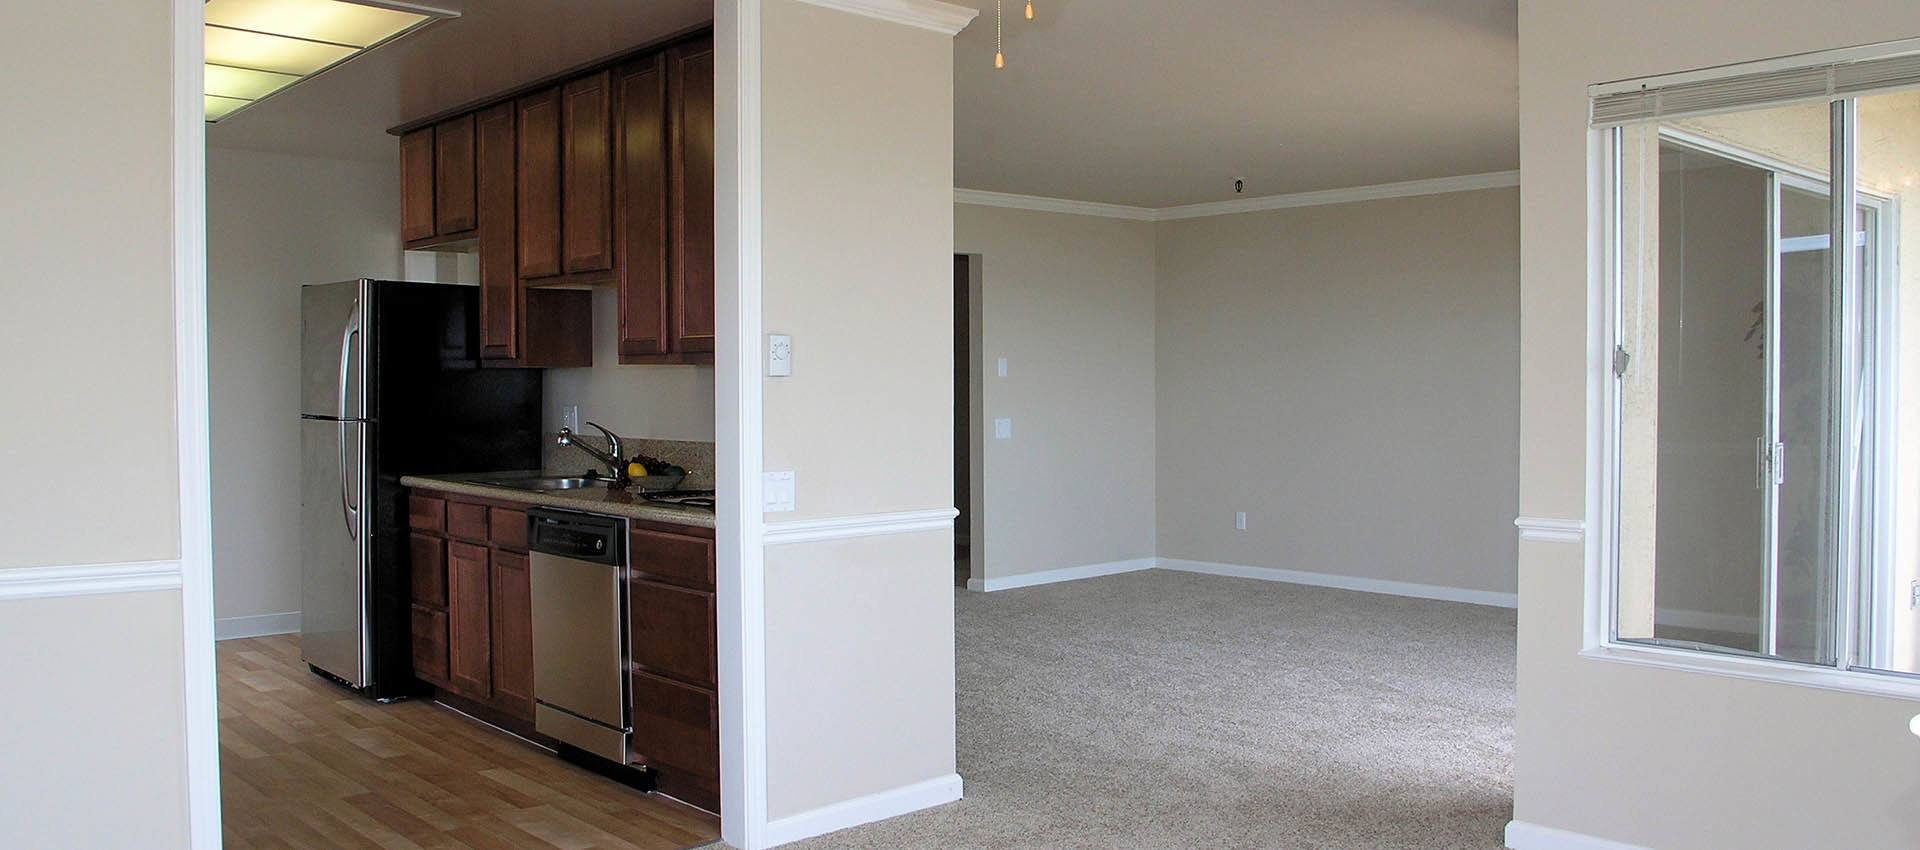 Kitchen and living room at Tower Apartment Homes in Alameda, CA